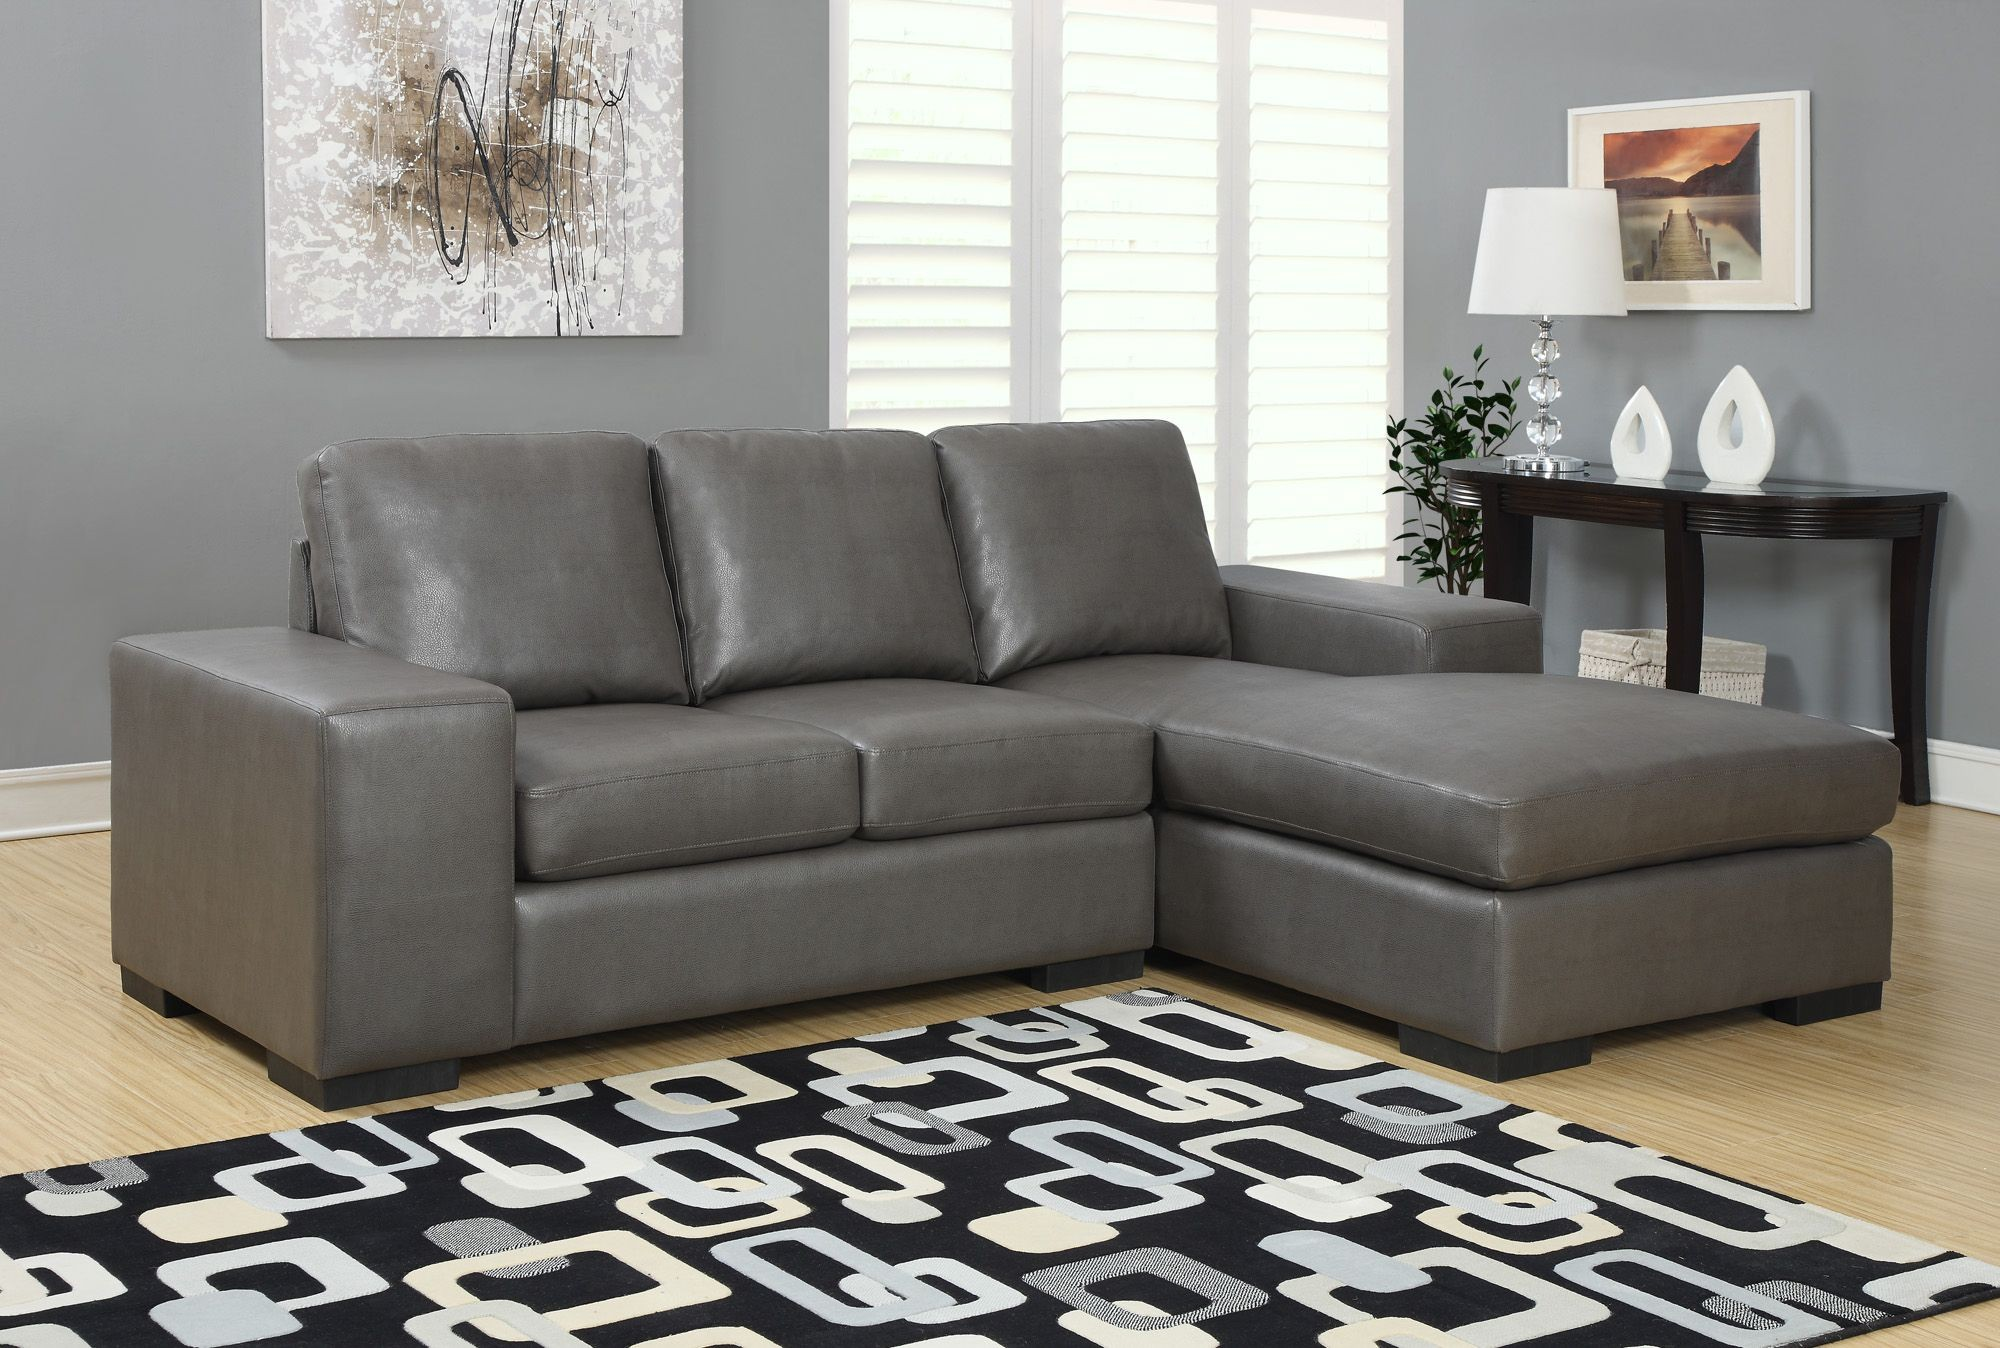 charcoal gray sectional sofa ikea hovas embly bonded leather match from